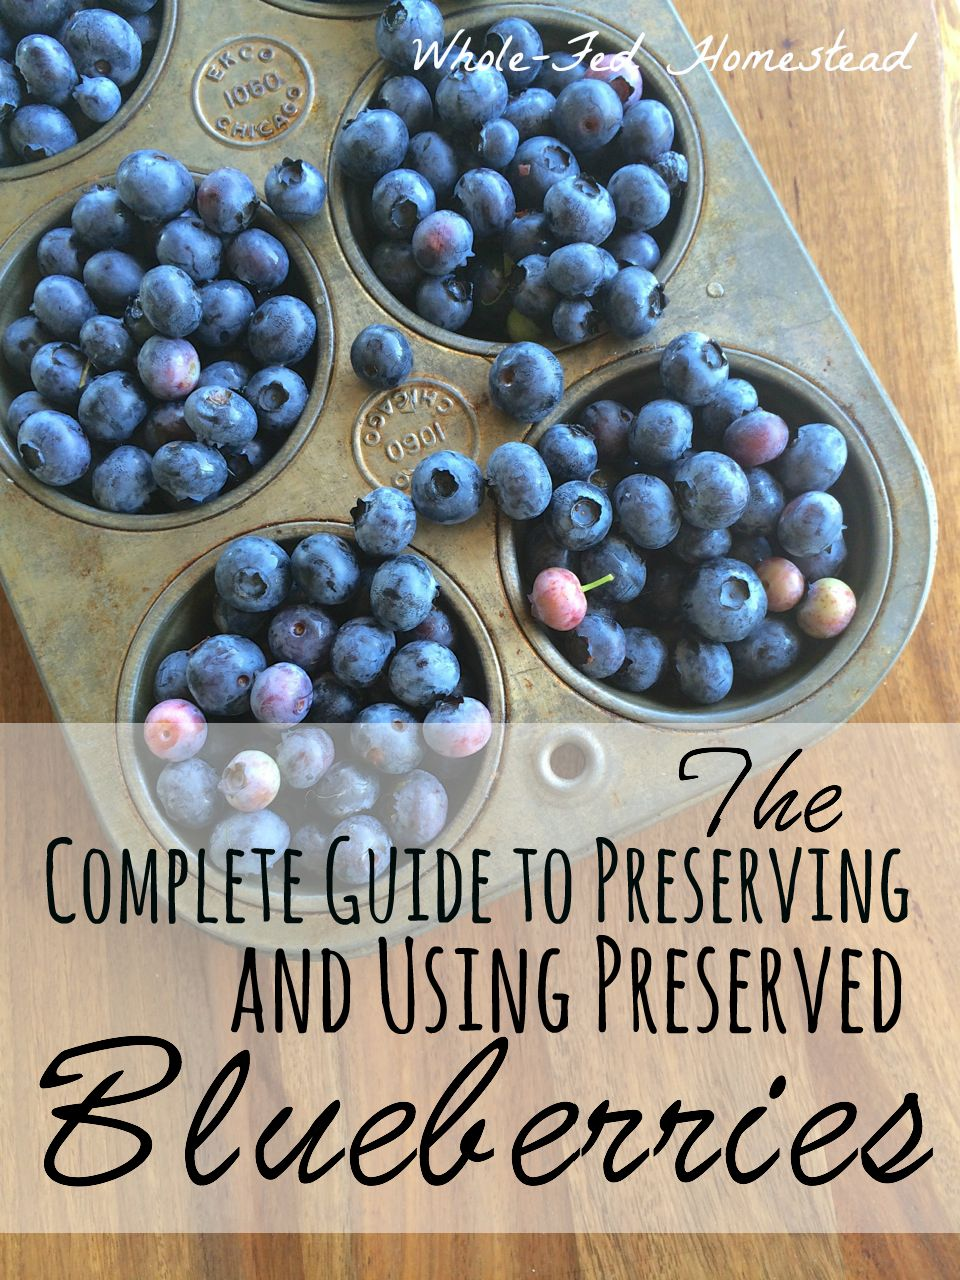 The Complete Guide to Preserving and Using Preserved Blueberries